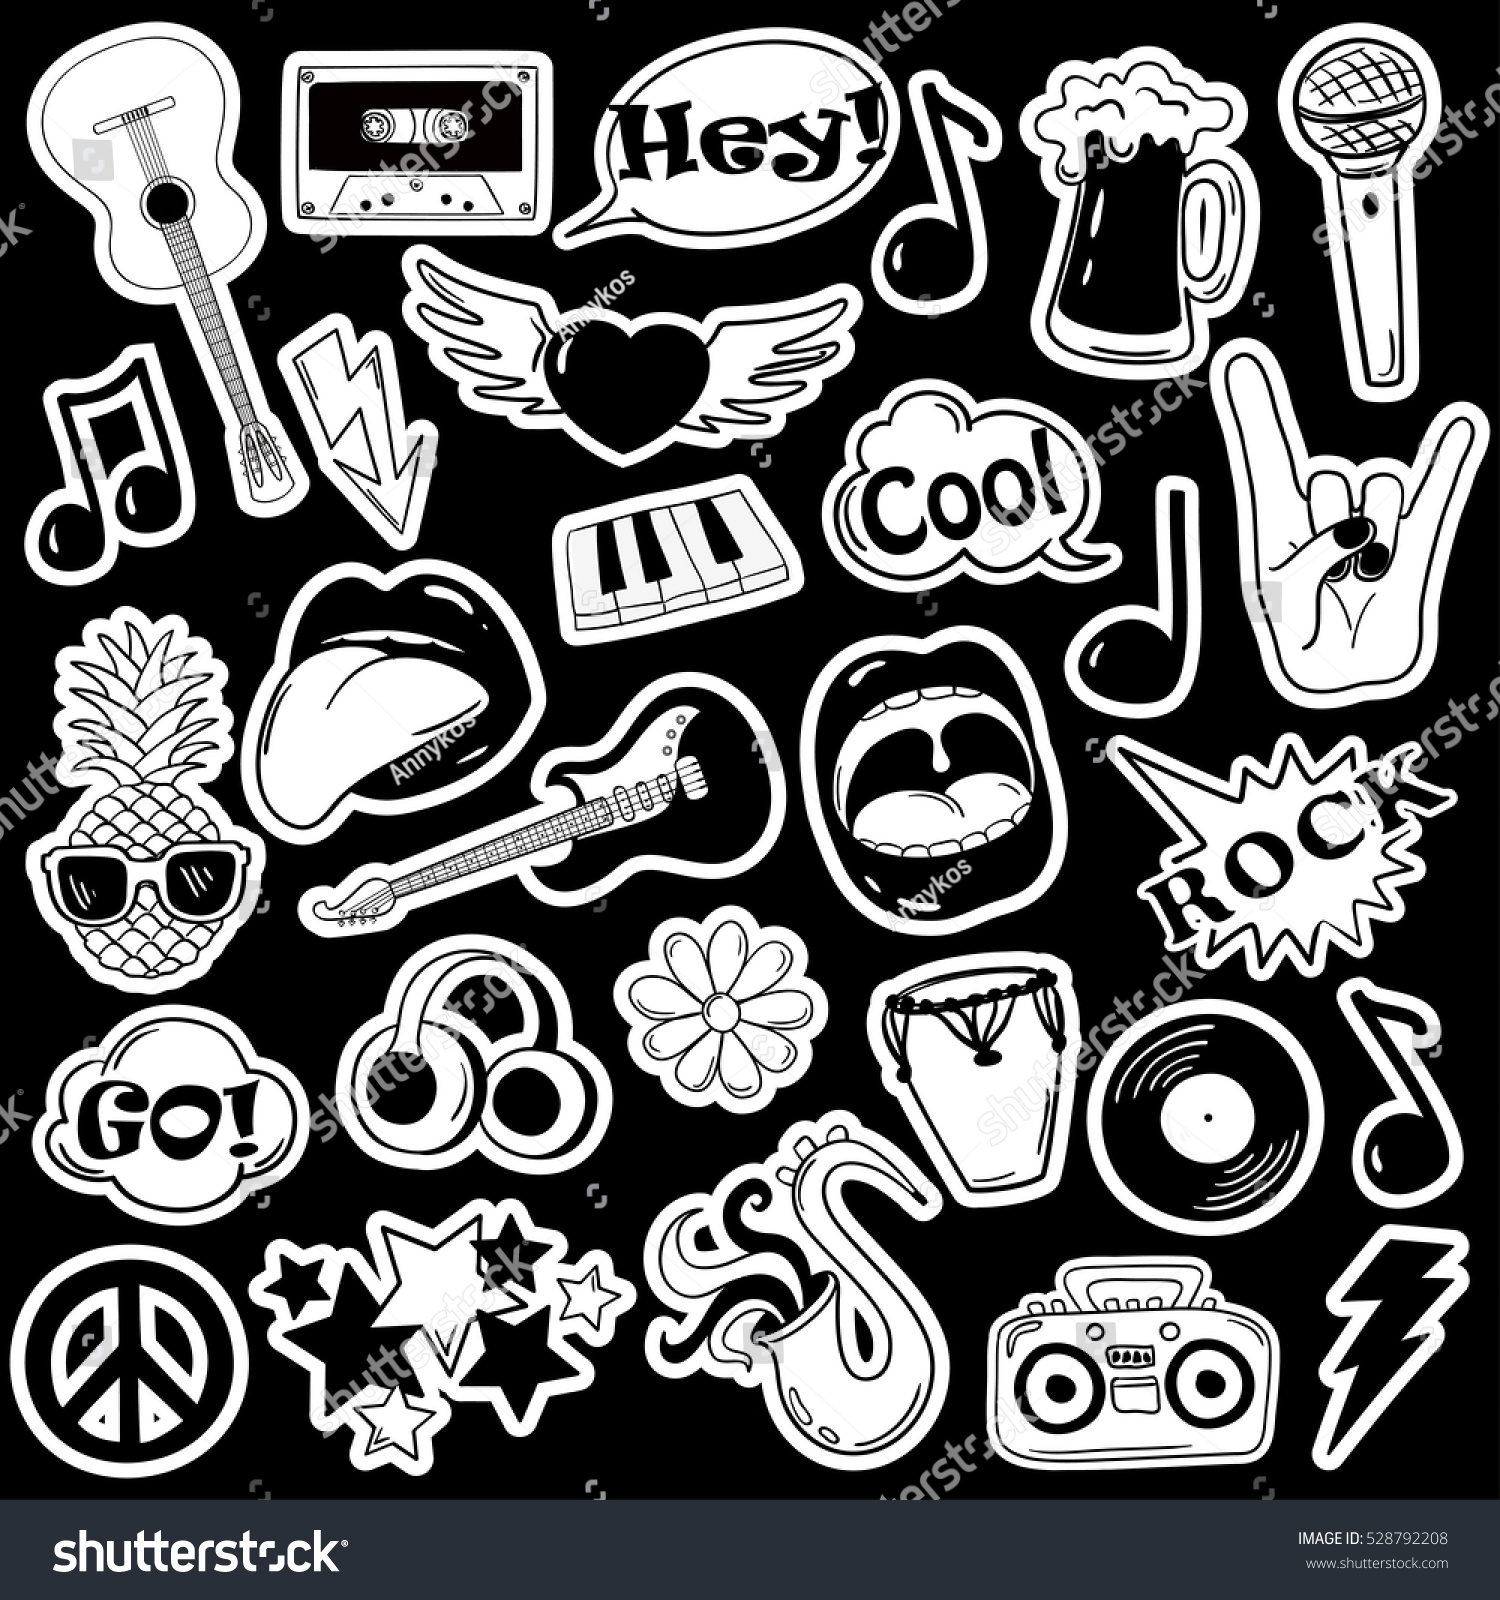 Black and white fun set of music stickers icons emoji pins or patches